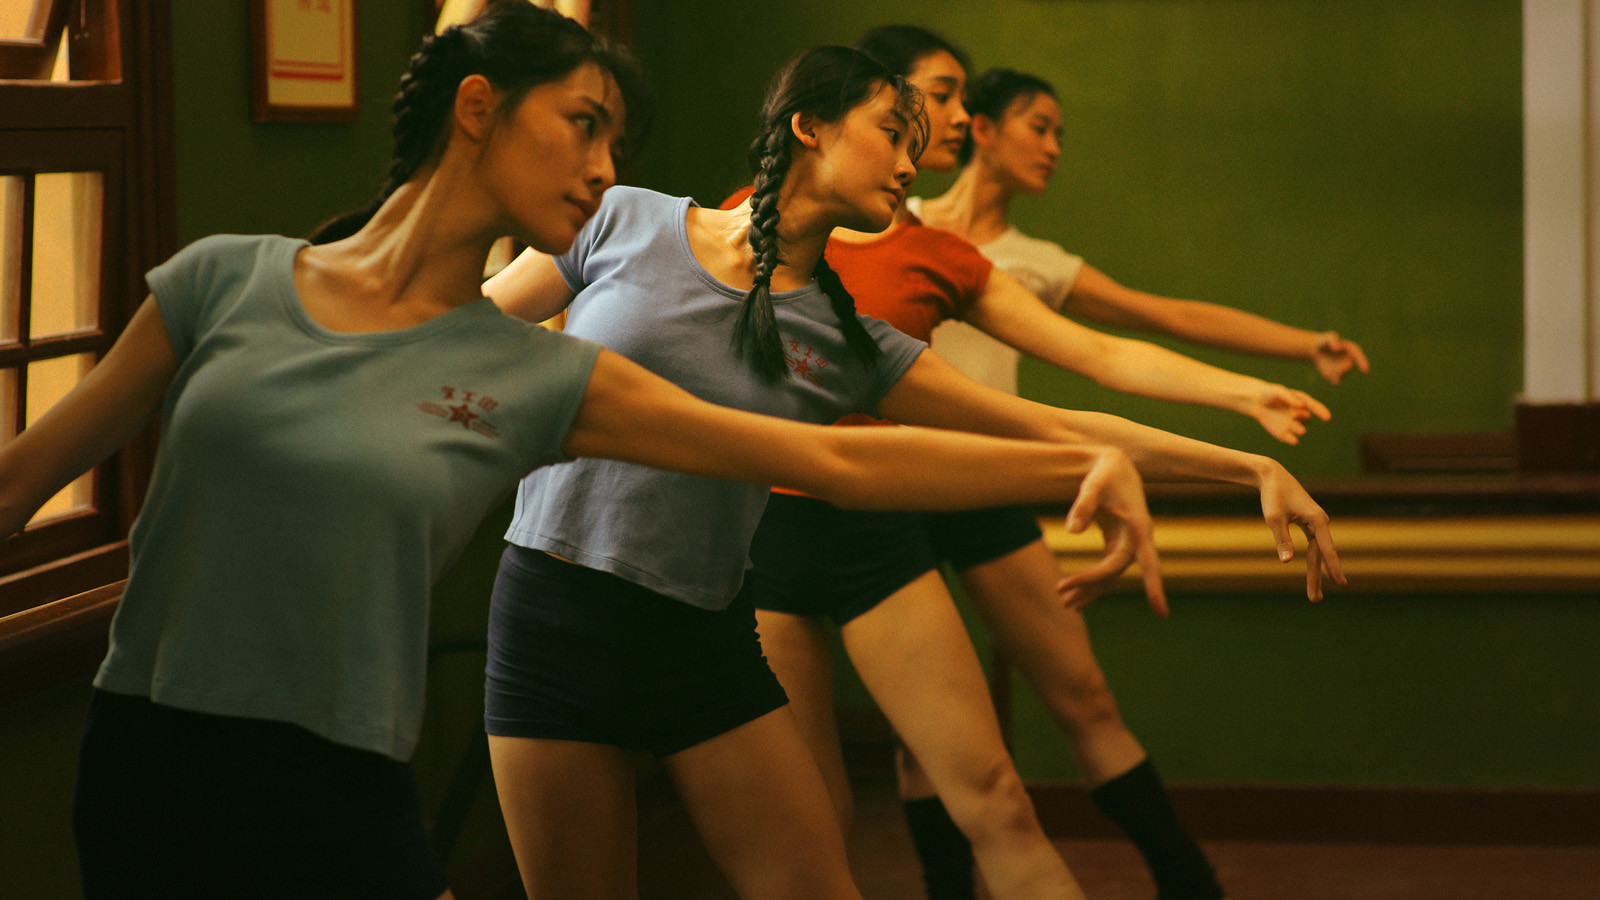 Feng Xiaogang's stirring 'Youth' follows a Chinese military arts troupe through history